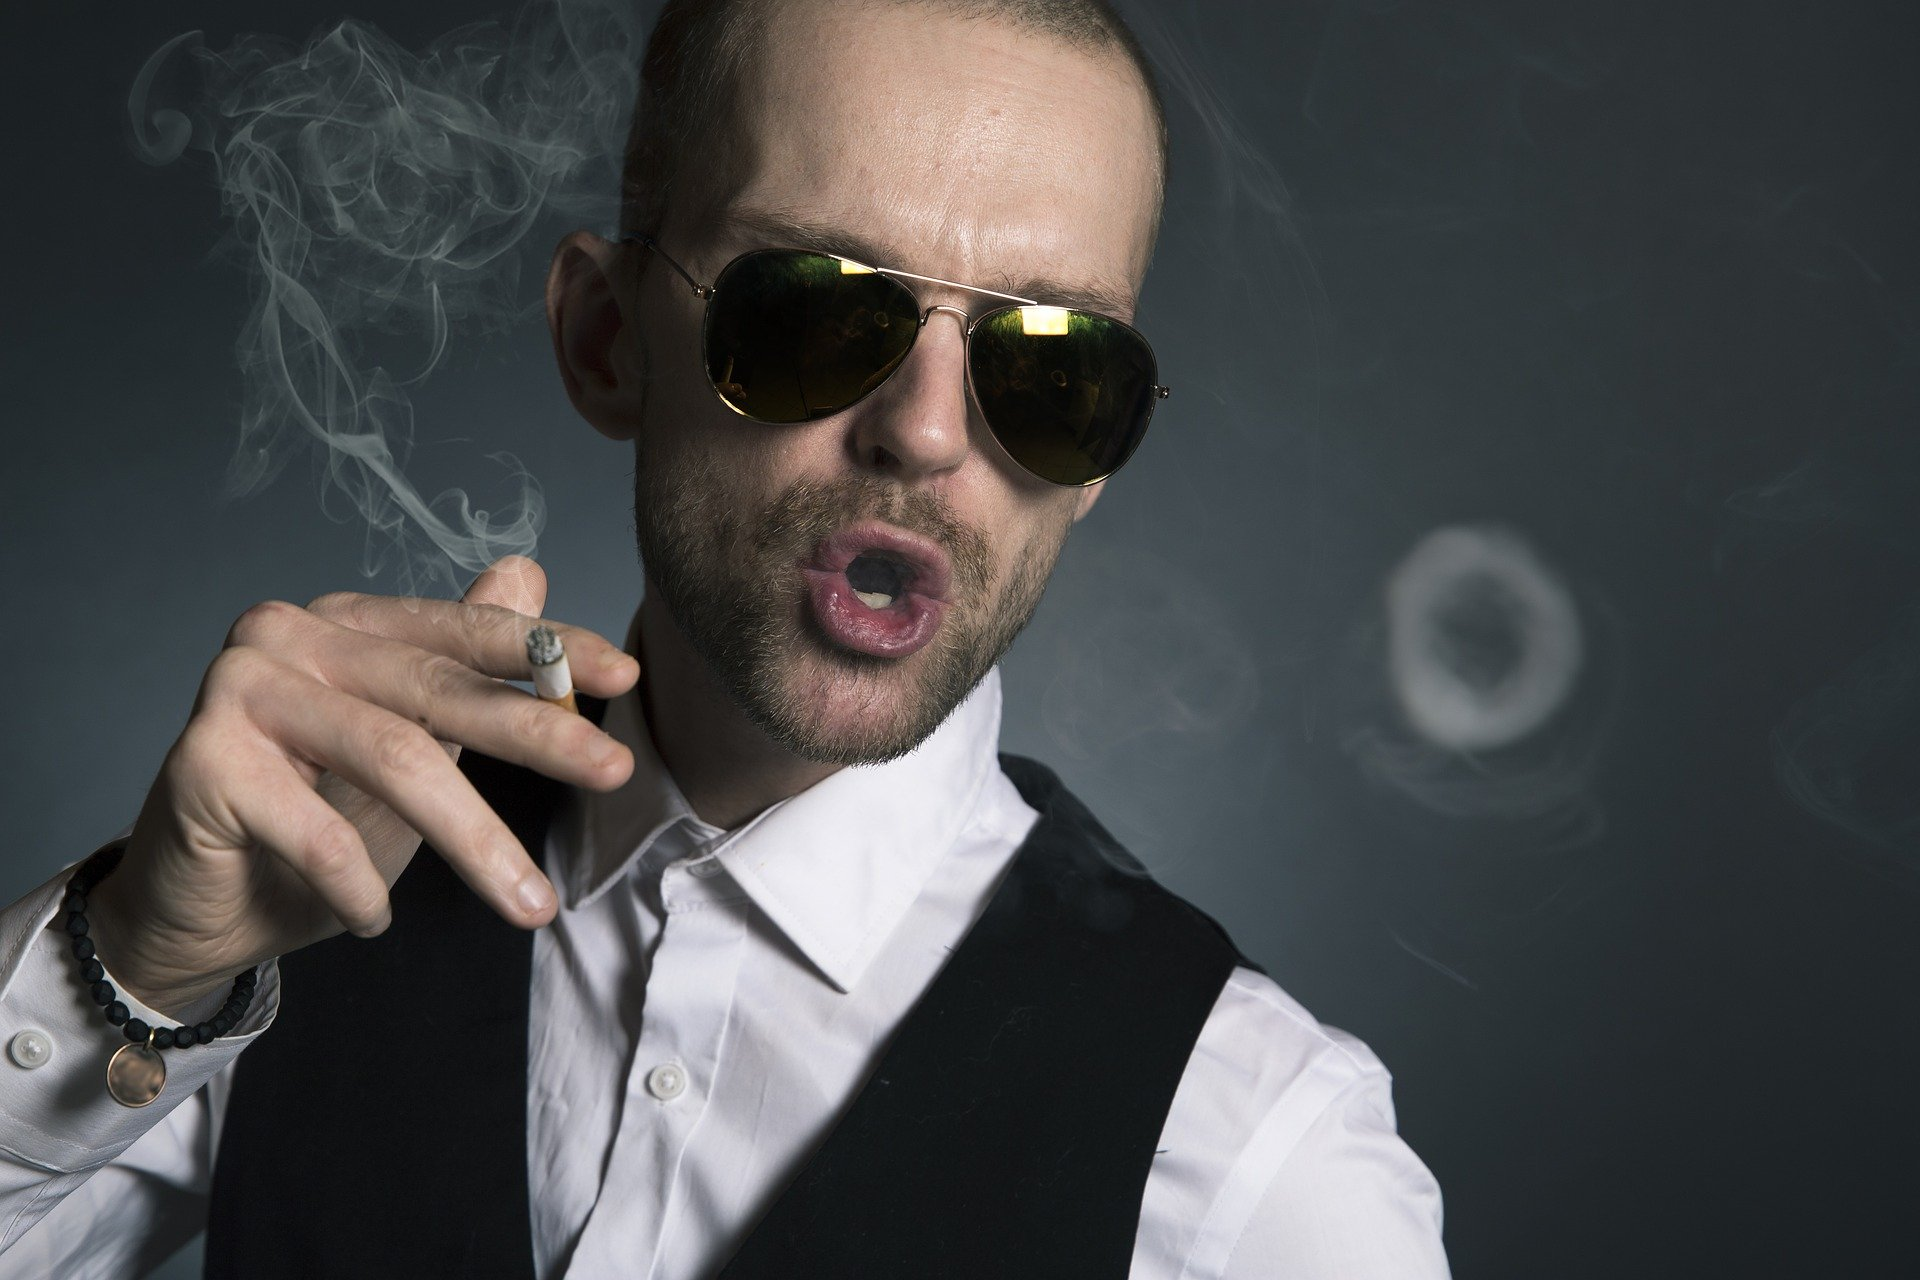 An arrogant rich man wearing sunglasses while blowing out cigarette smoke   Photo: Pixabay/Sammy-Williams